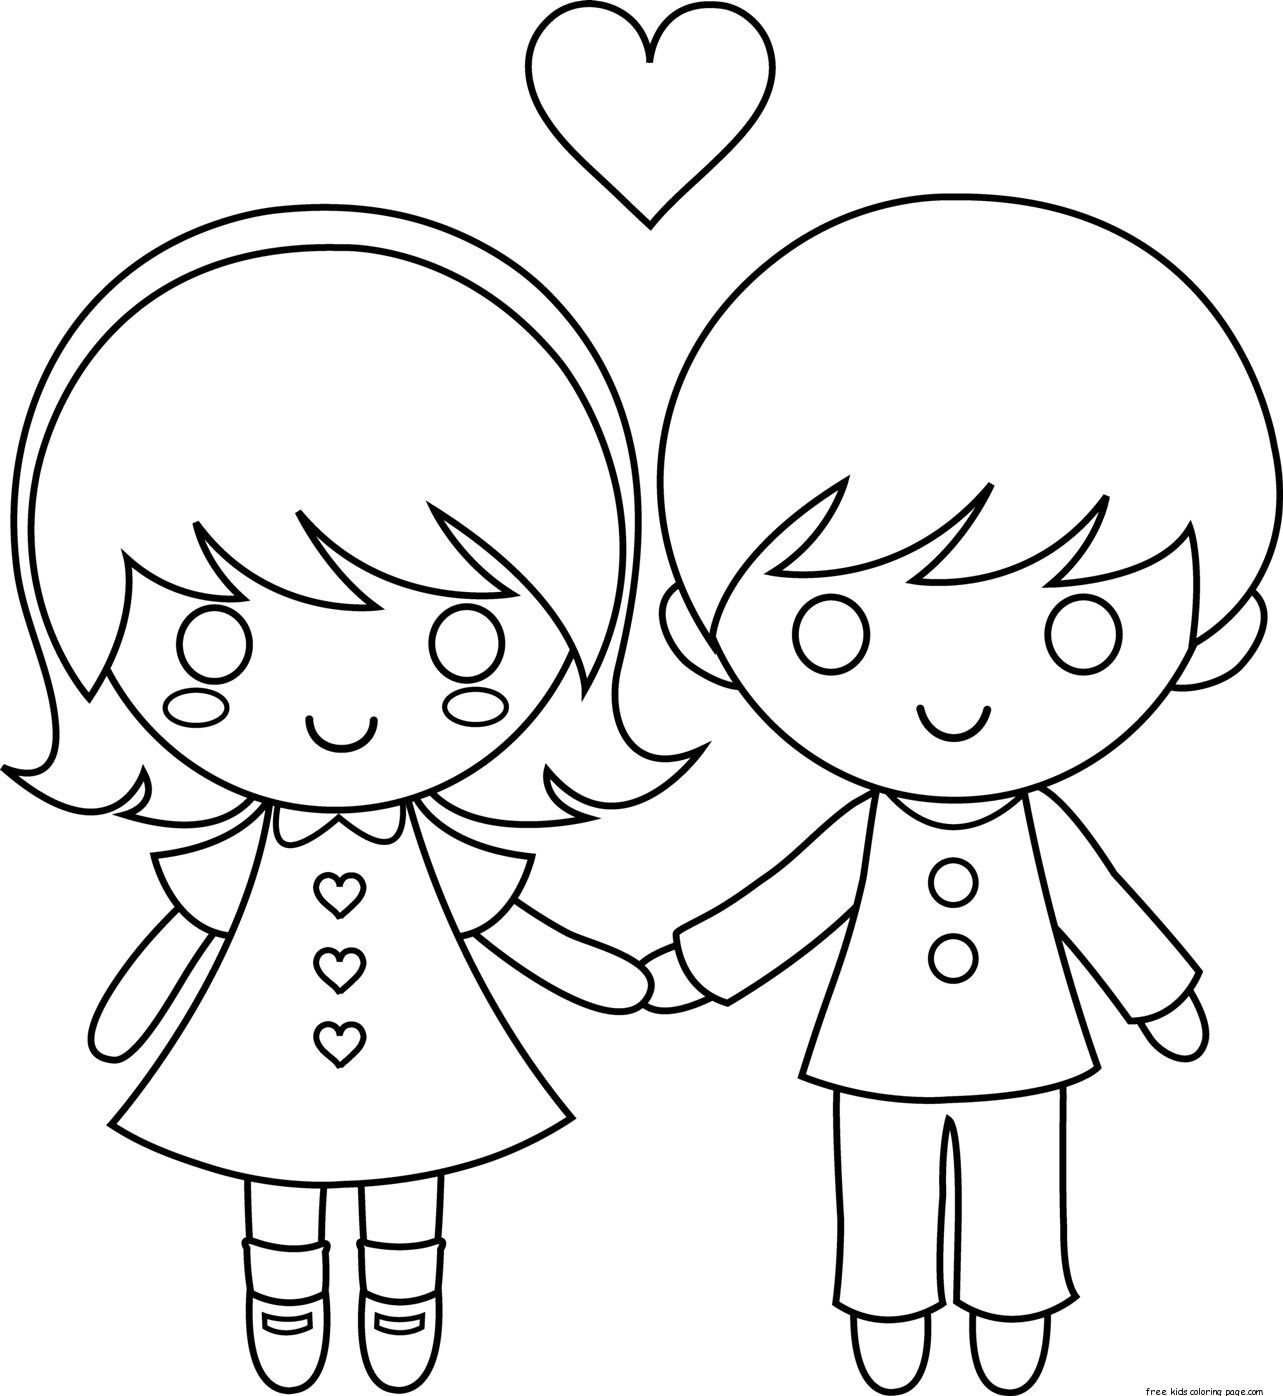 Printable Couple Valentine Day Coloring Pages For Kidsfree Printable Coloring Pages For Kids